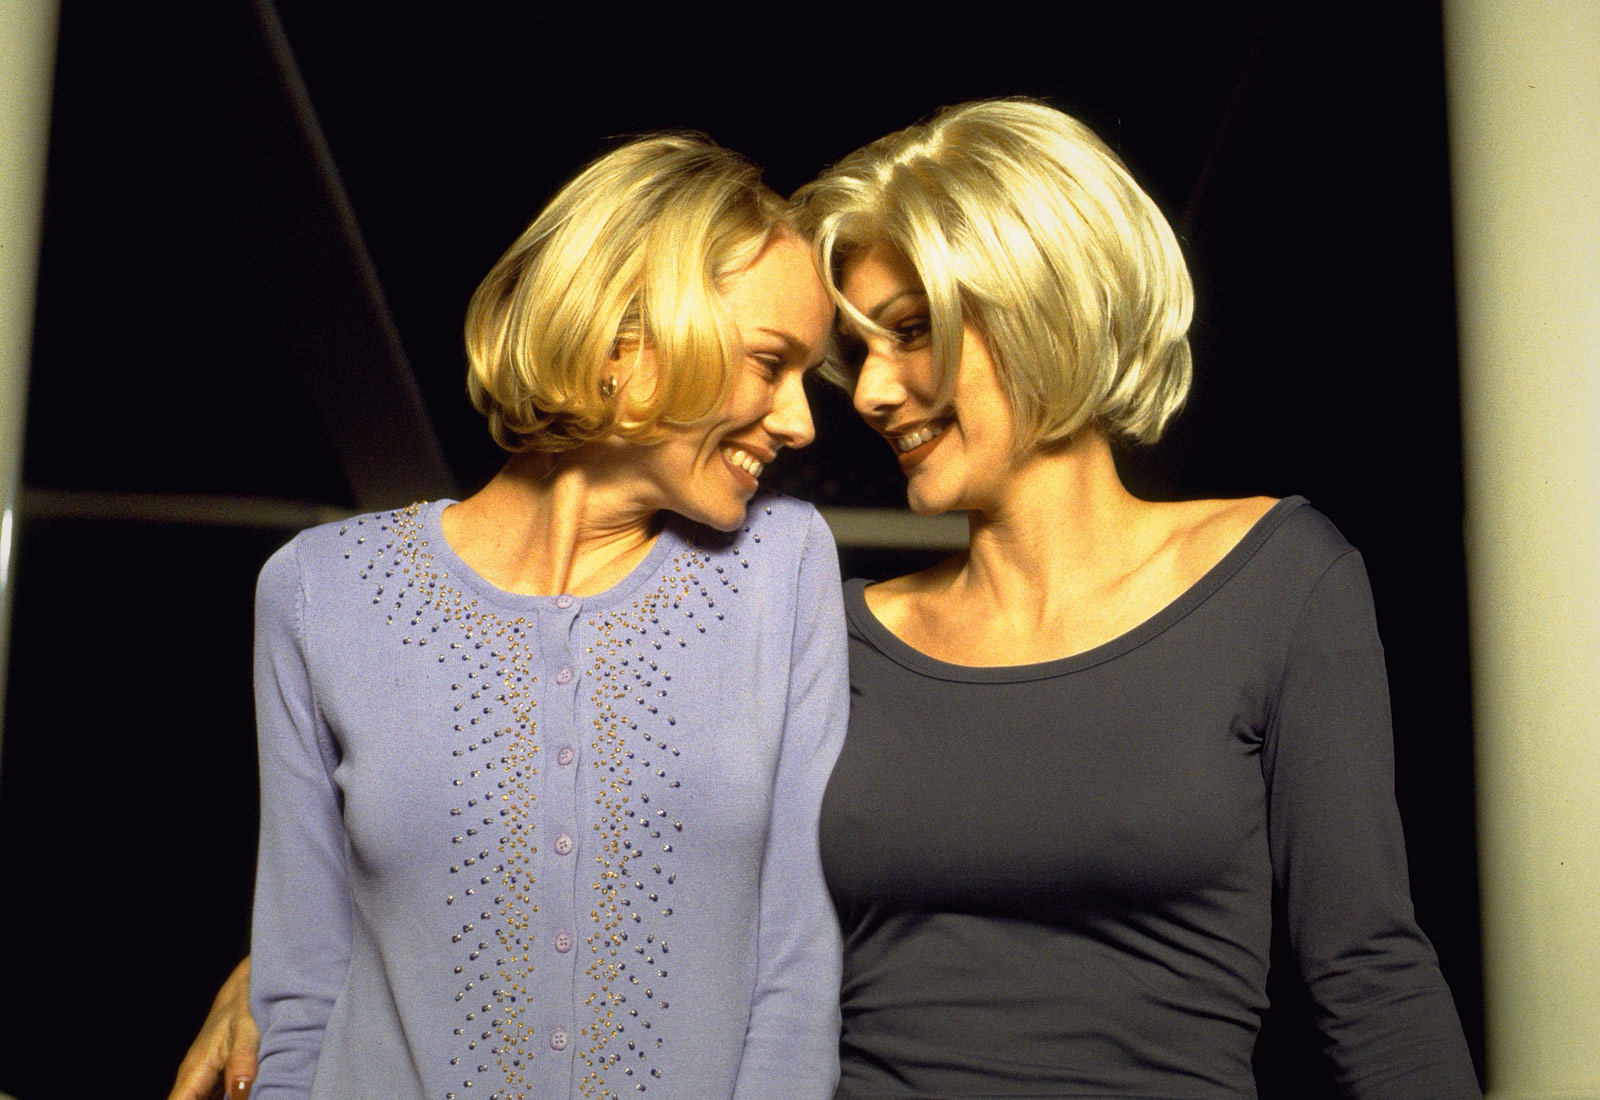 watch movie mulholland drive online free